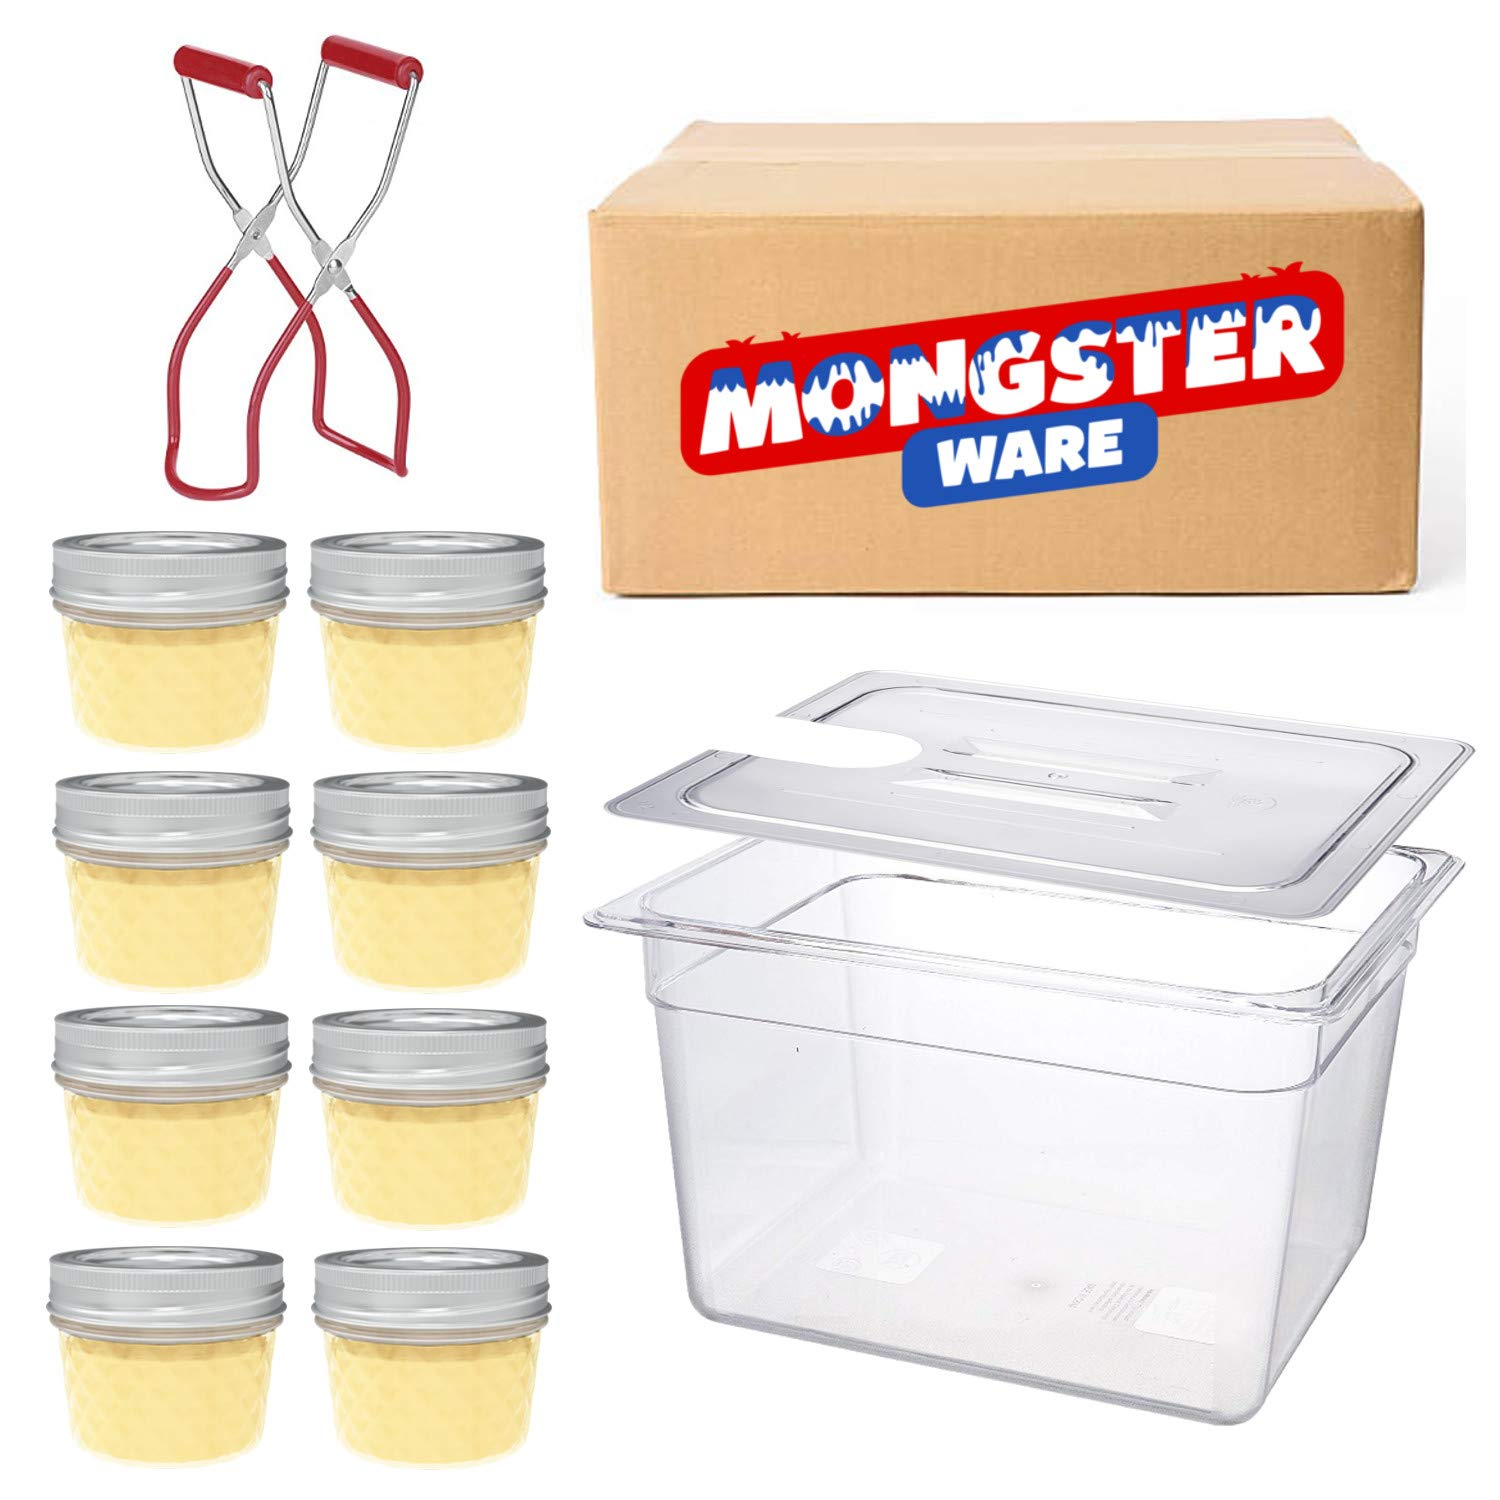 Sous Vide Egg Bites Mold Jar Kit - Anova Sous Vide Container with Lid, Small Mason Jars with Lids 4 oz and Jar Lifter for Mini 4oz Glass Canning Jars (Black Jar Lifter Handle) Mongsterware